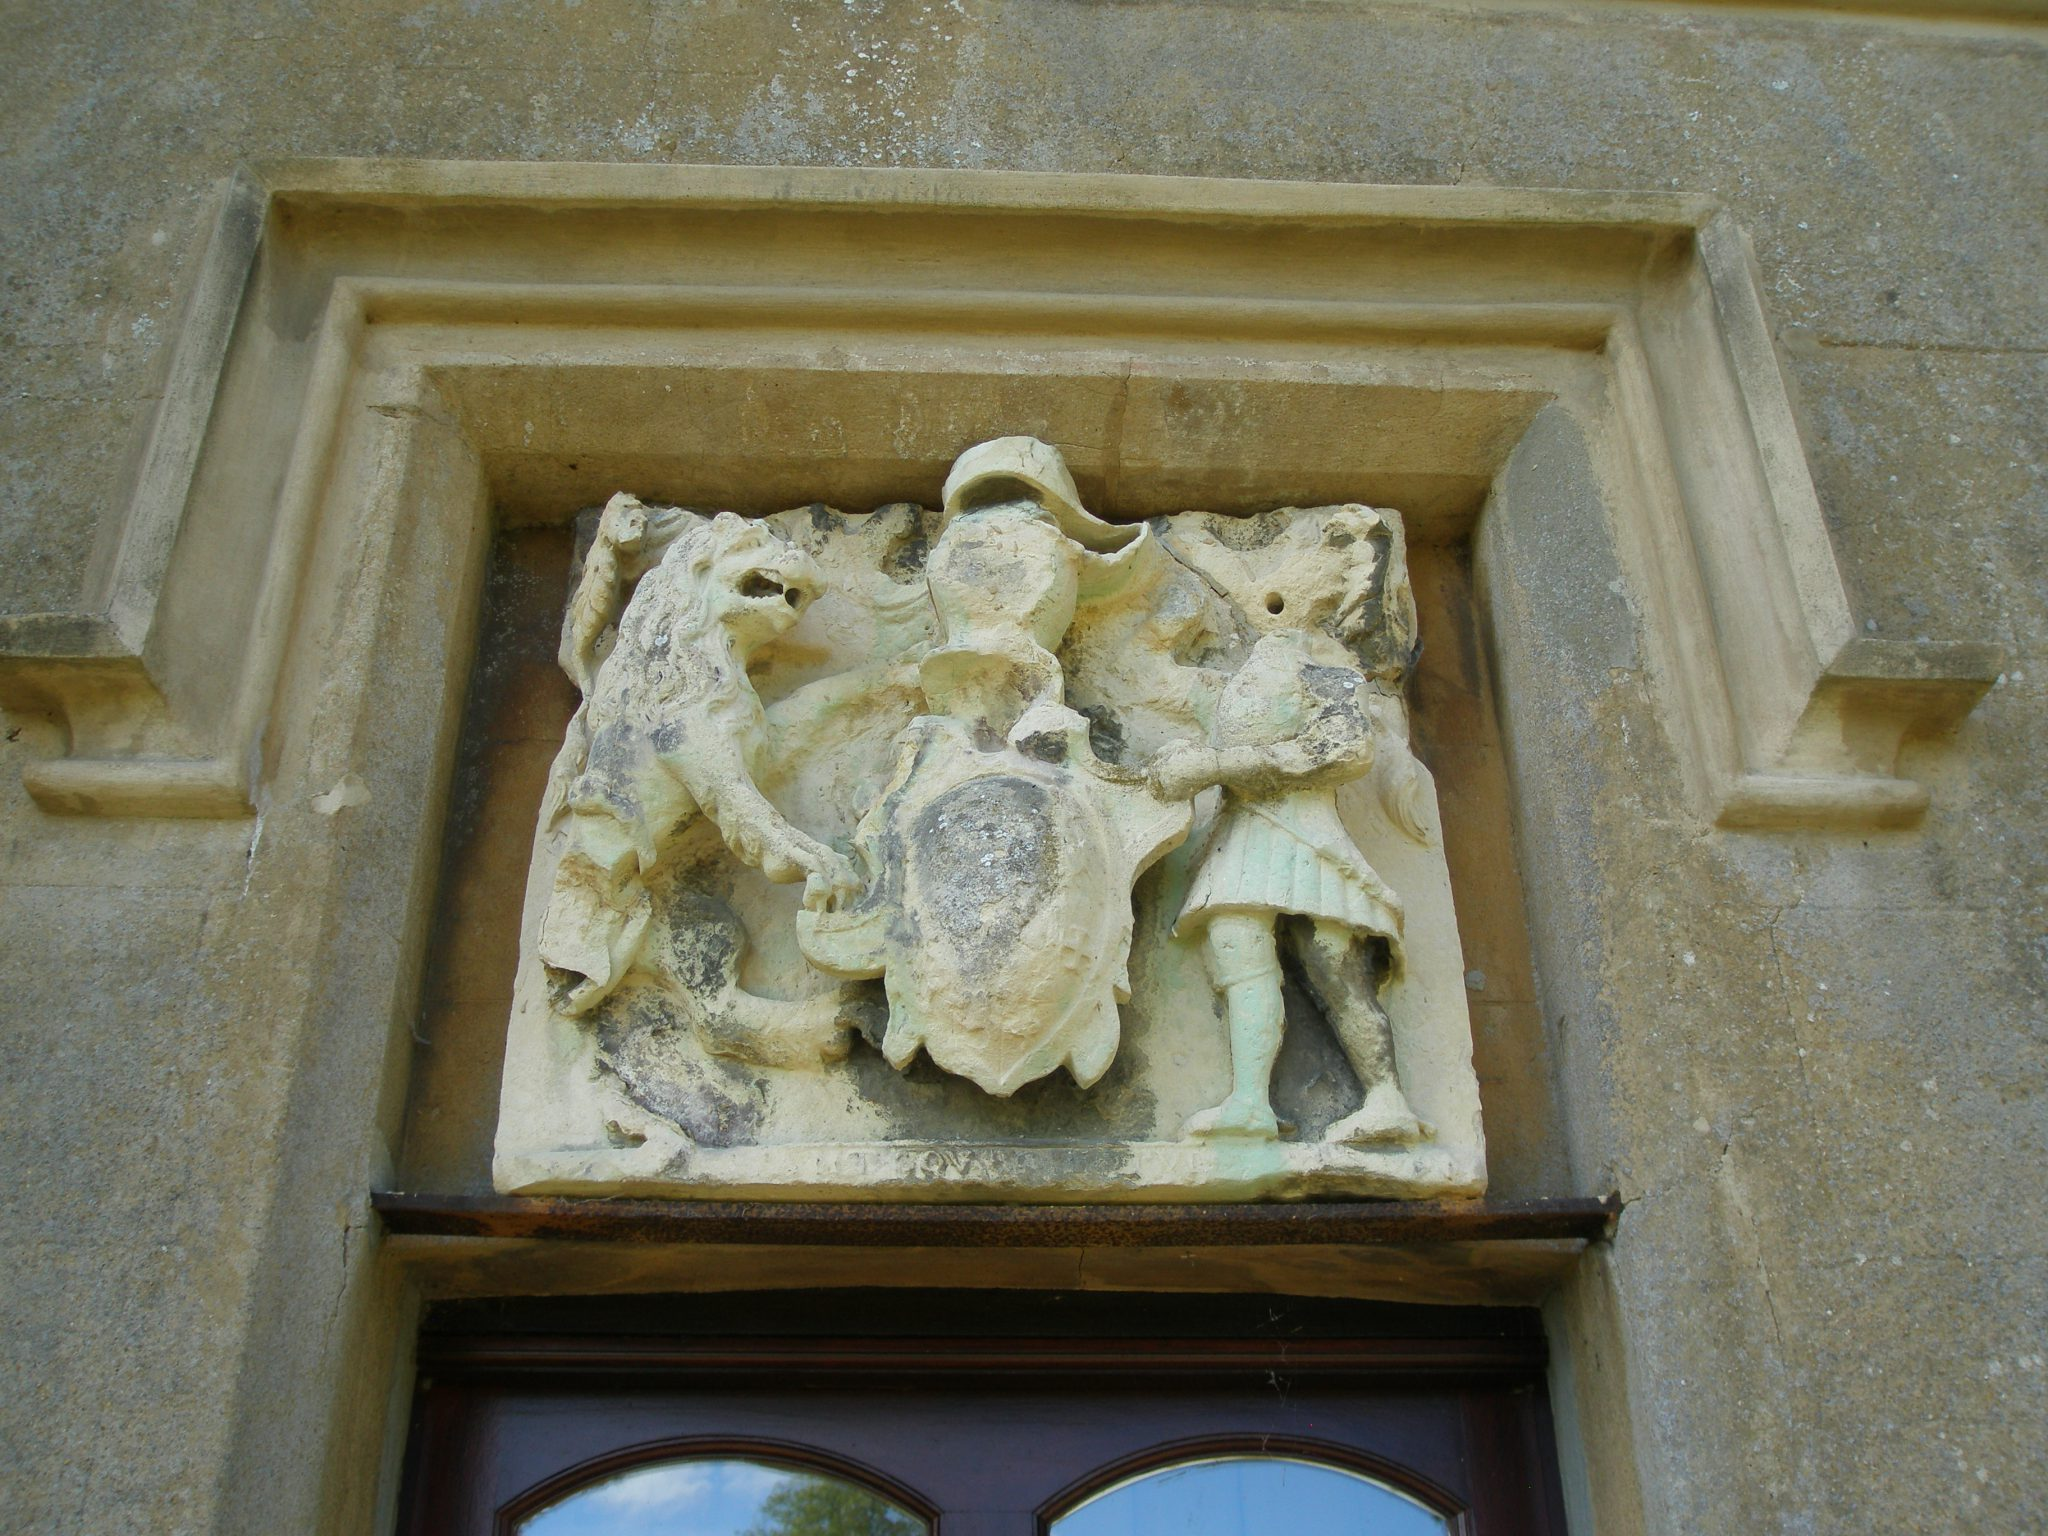 A window decoration